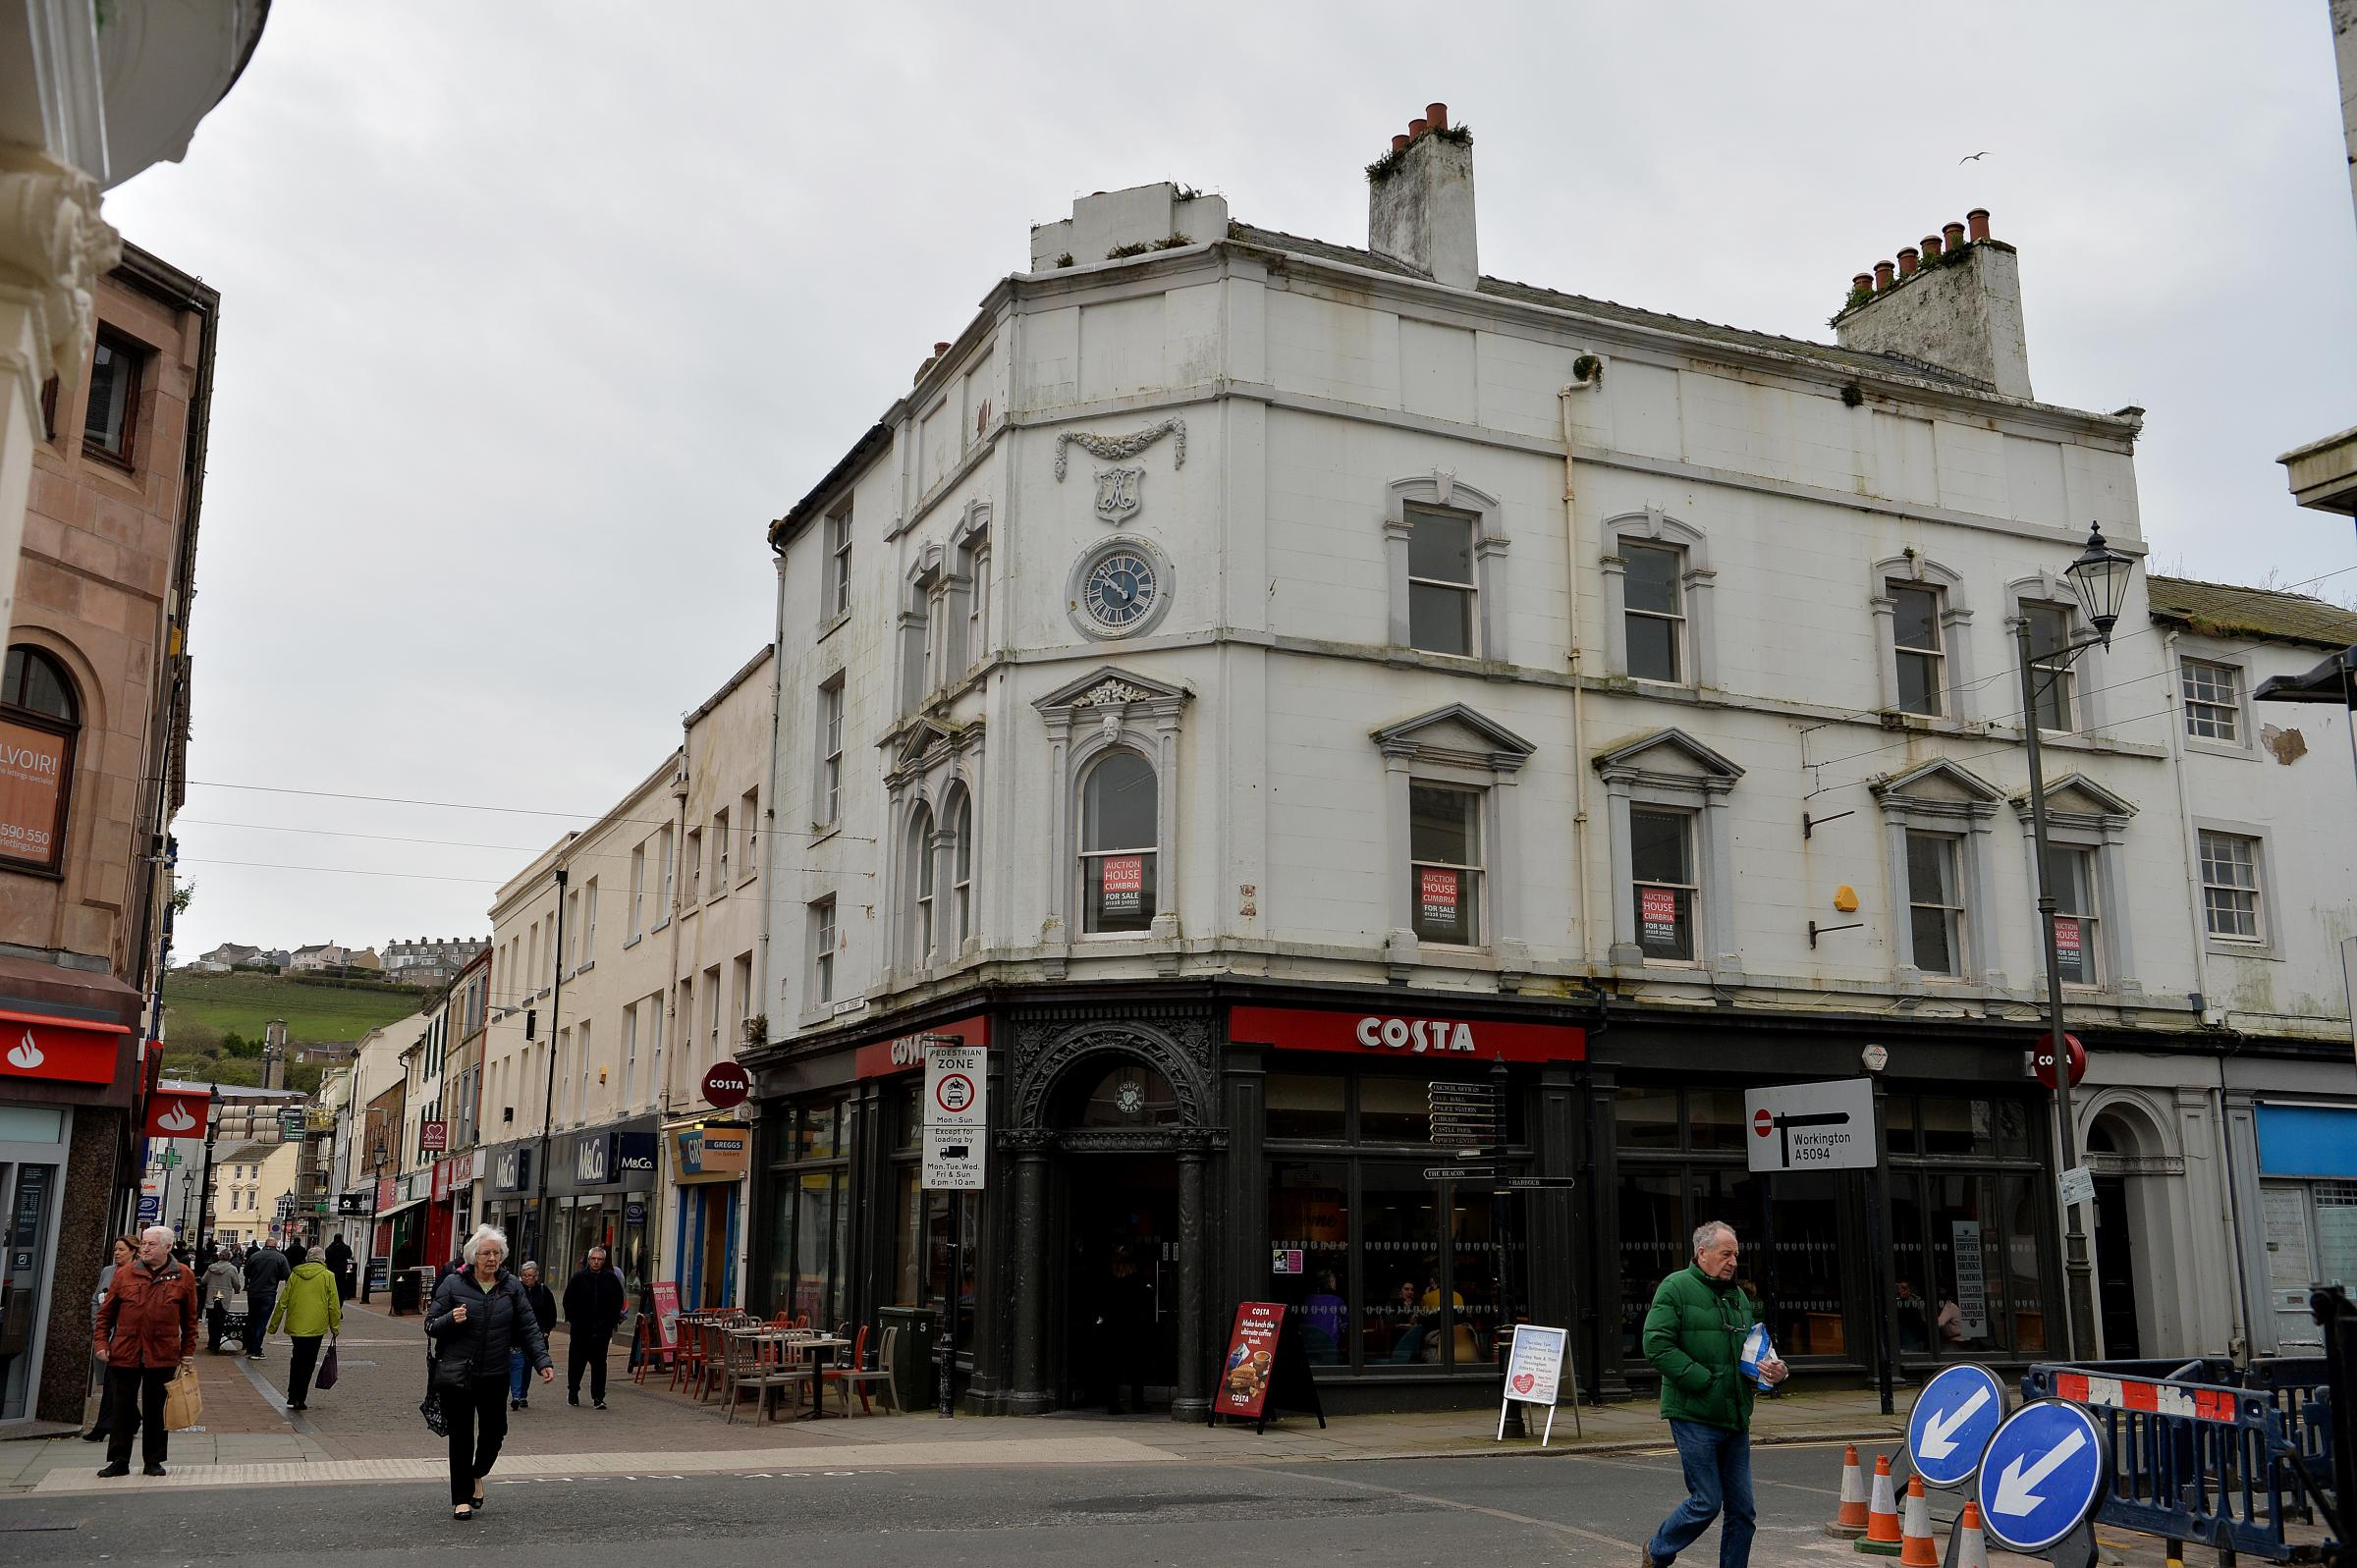 SOLD: The upper floors of the building housing Costa Coffee on Lowther Street in Whitehaven have been sold at auction. TOM KAY